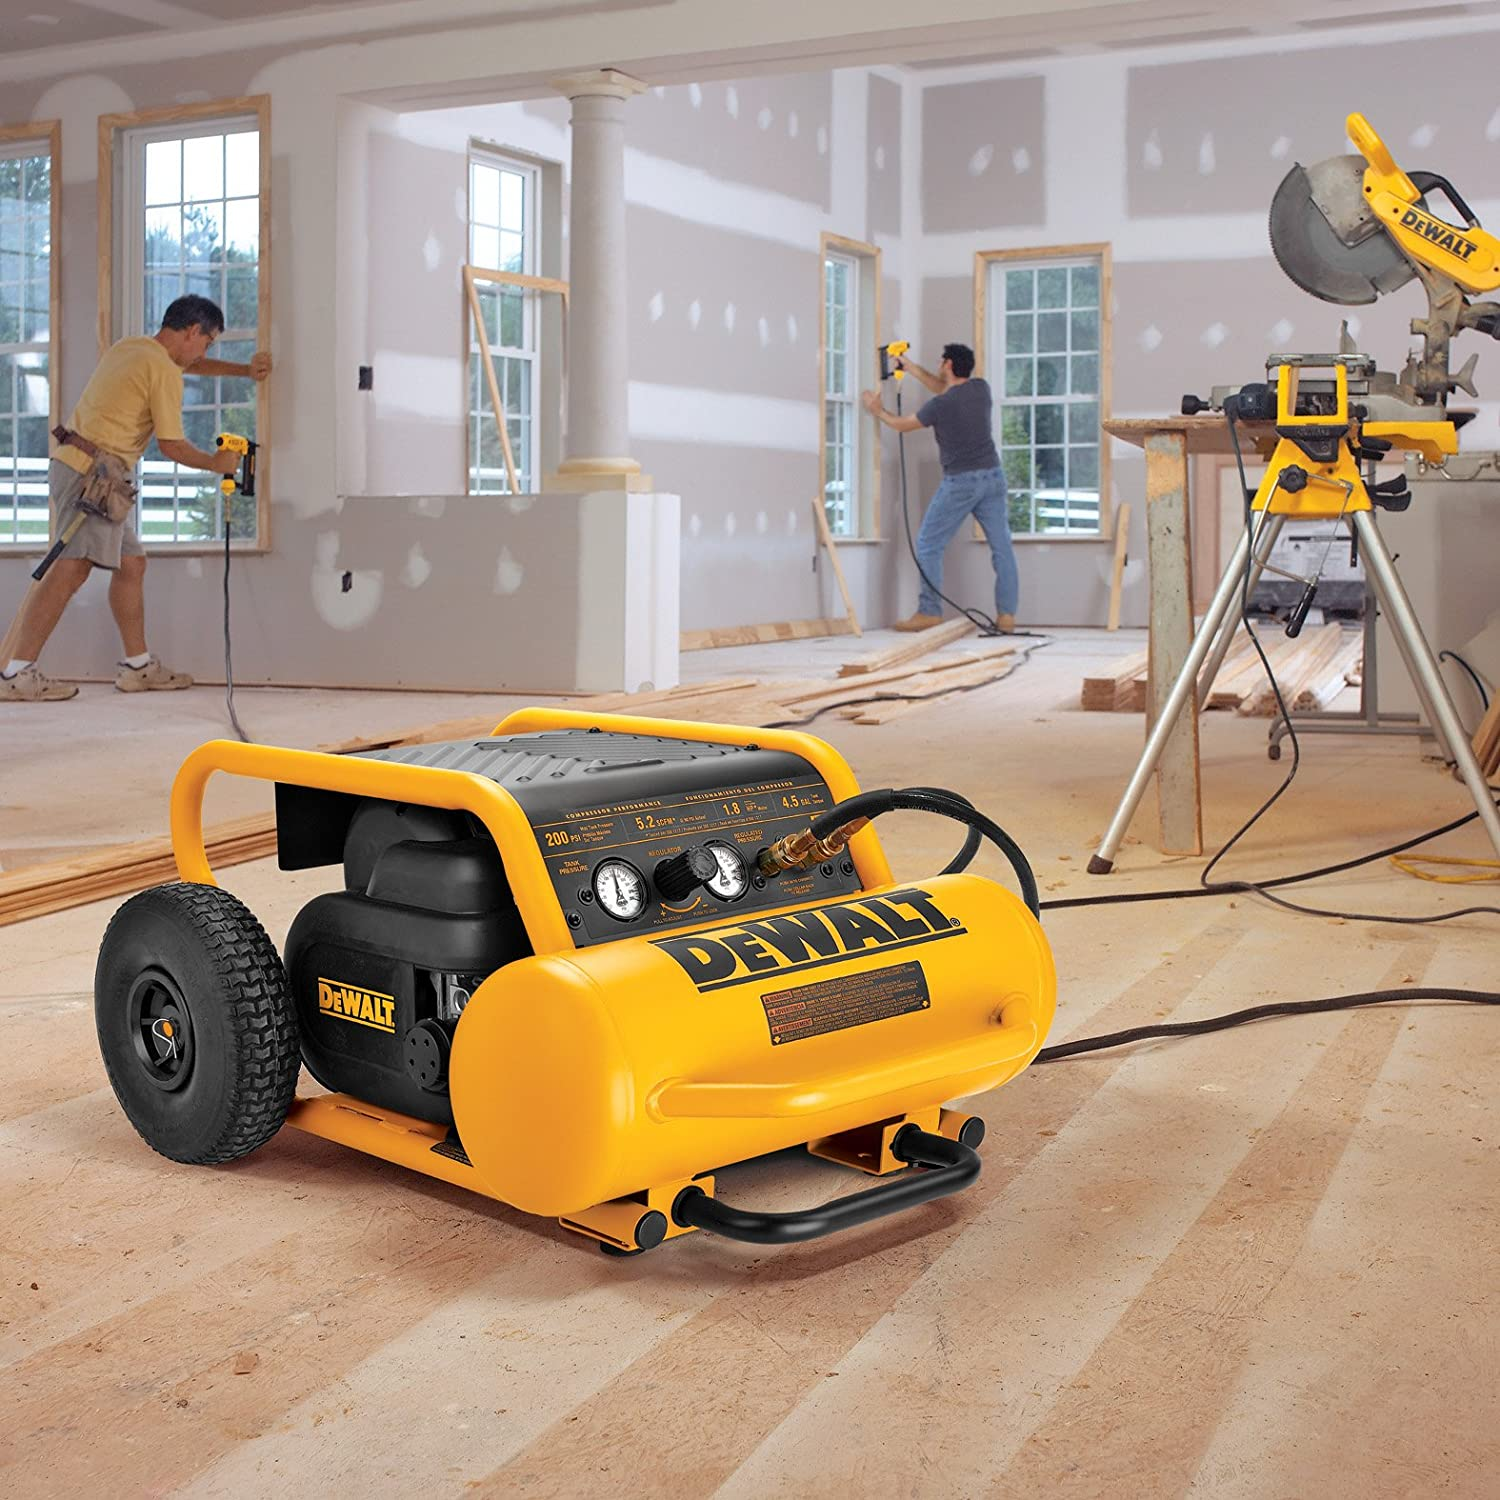 dewalt portable air compressor use